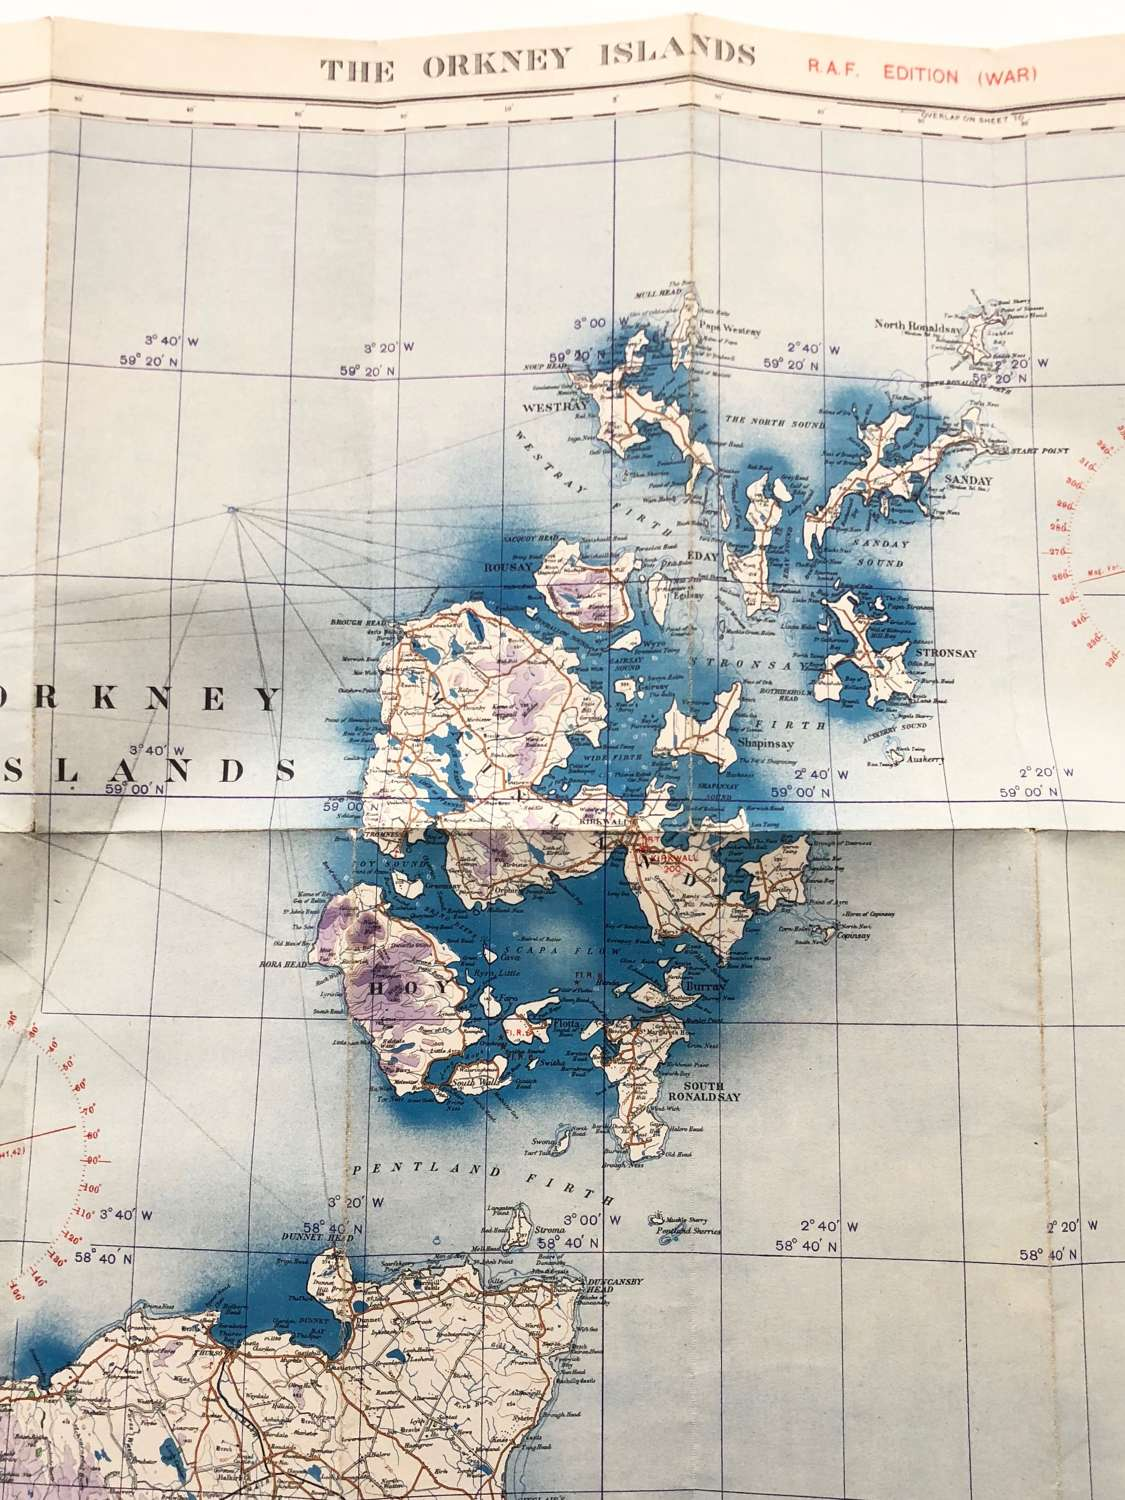 WW2 RAF Flying Map The Orkney Islands.